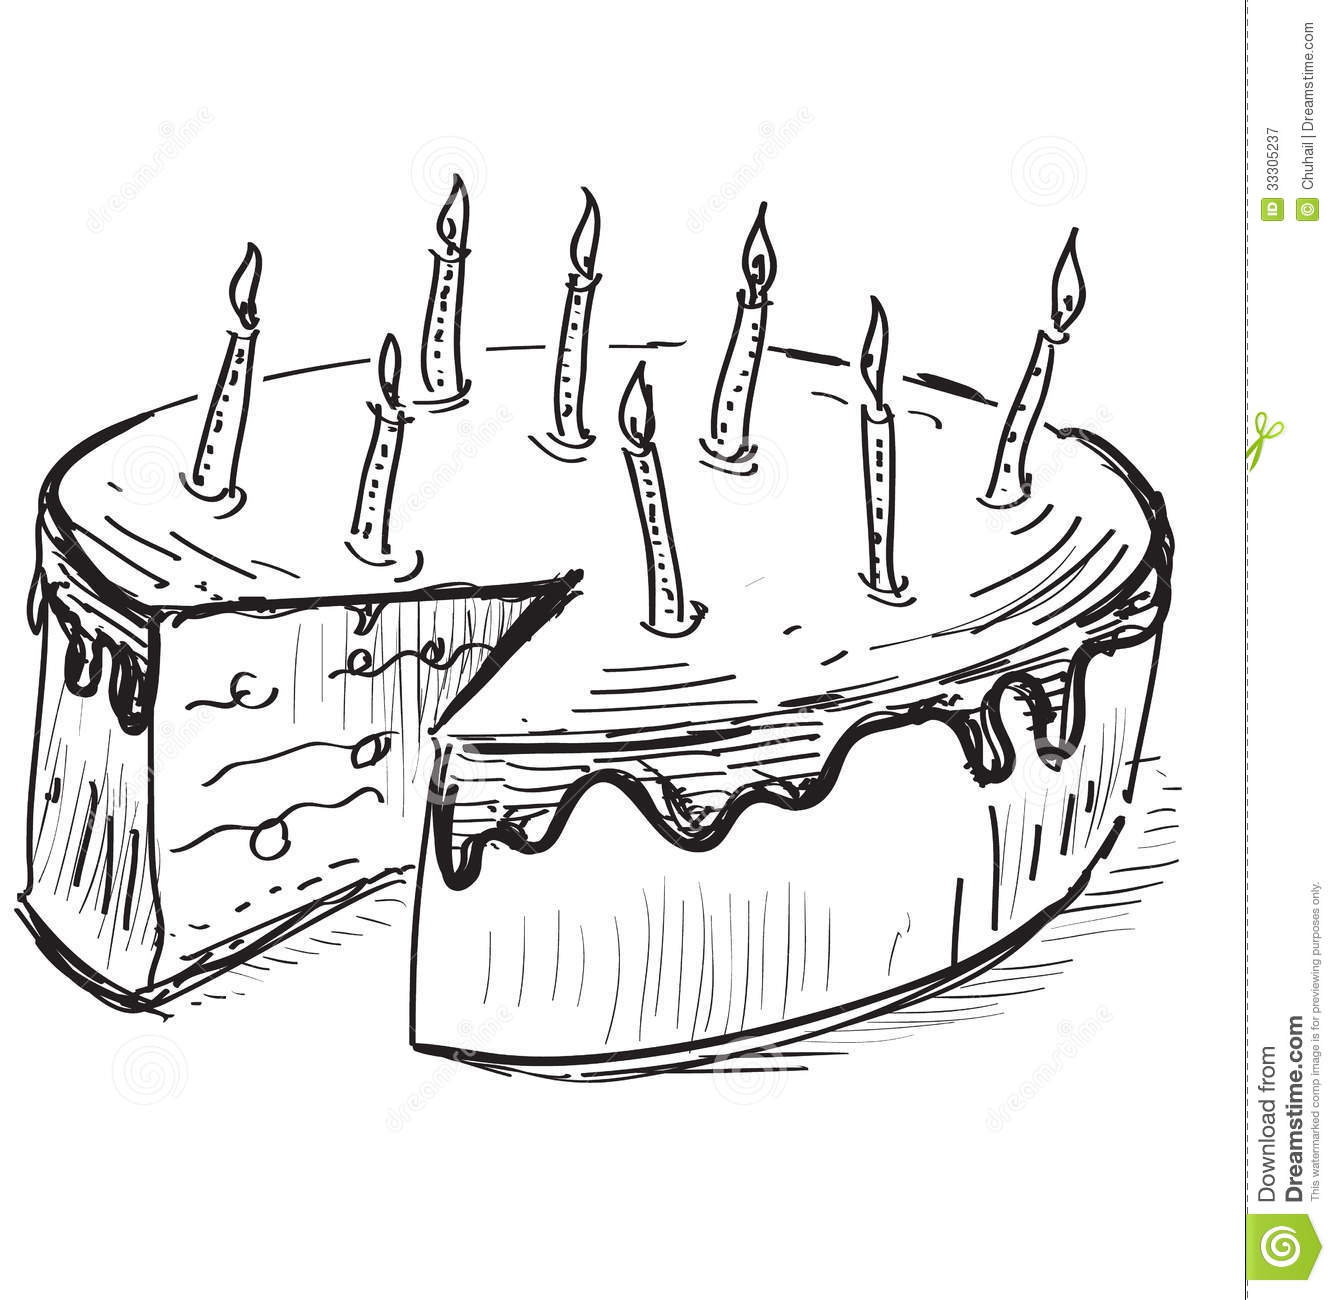 birthday cake pencil drawing ; birthday-cake-pencil-drawing-photos-drawn-cake-sketched-pencil-and-in-color-drawn-cake-sketched